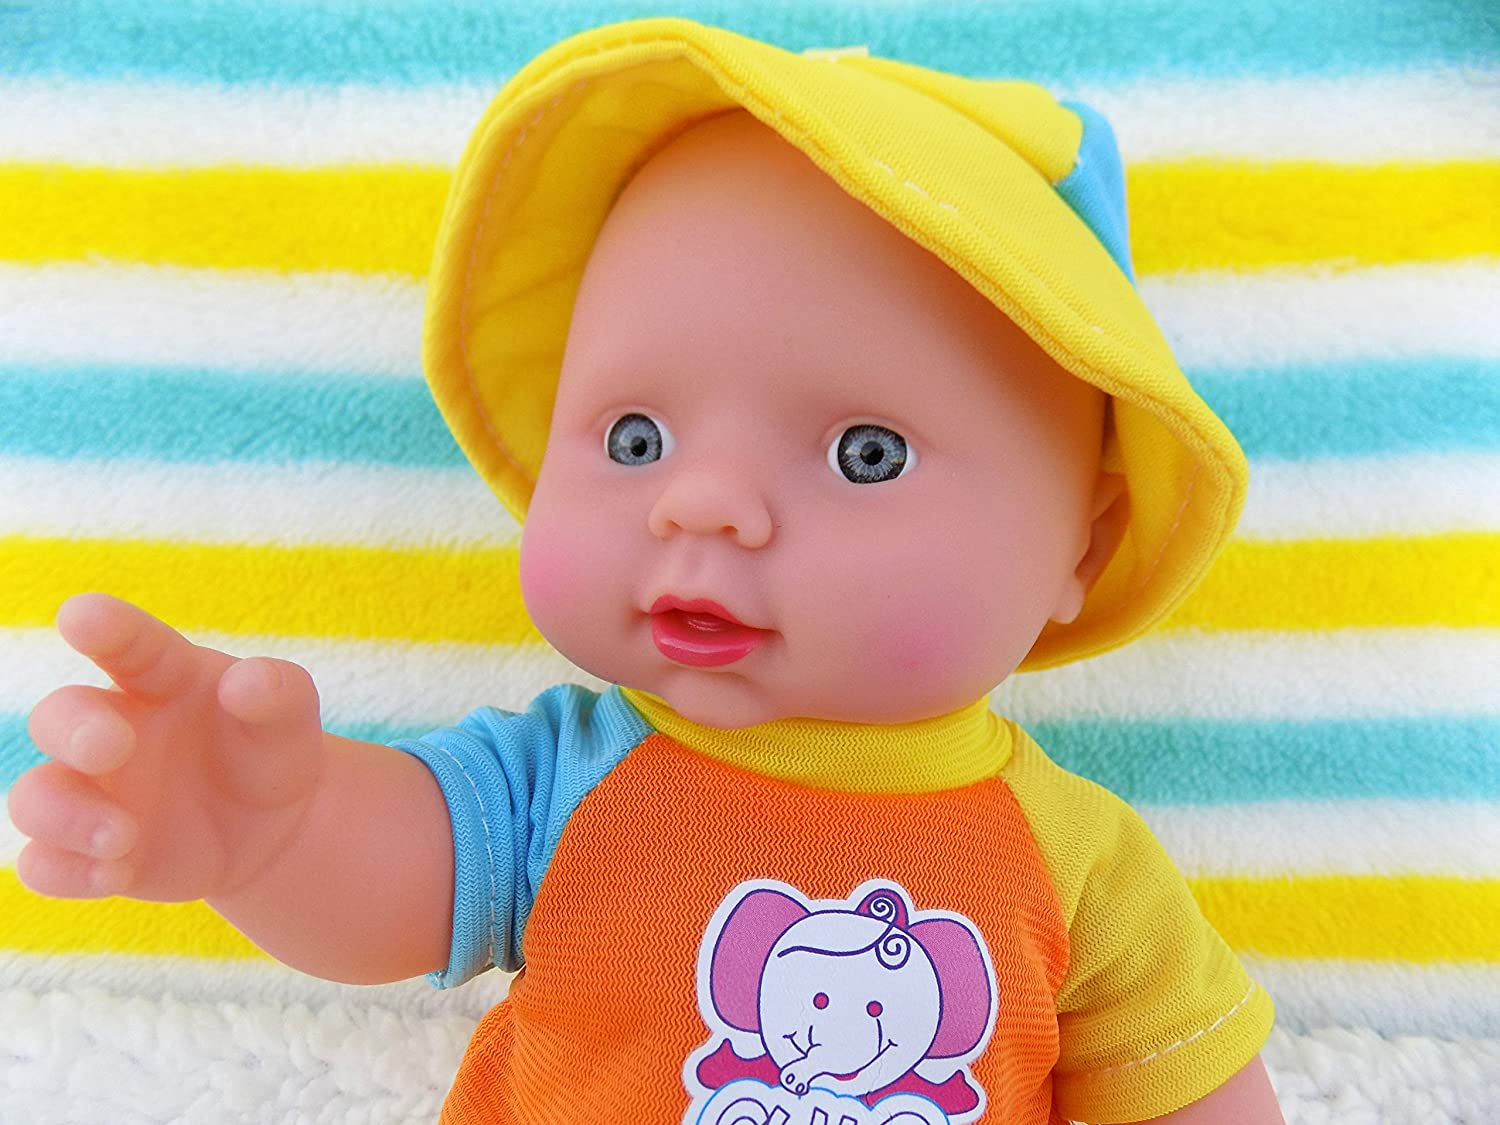 "Baby Boy Real Life Doll 10"" Inches Fruit Scented Blue Eyes 6 Sounds Clothes Talking Toy Fun Play Vivid Press My Belly"